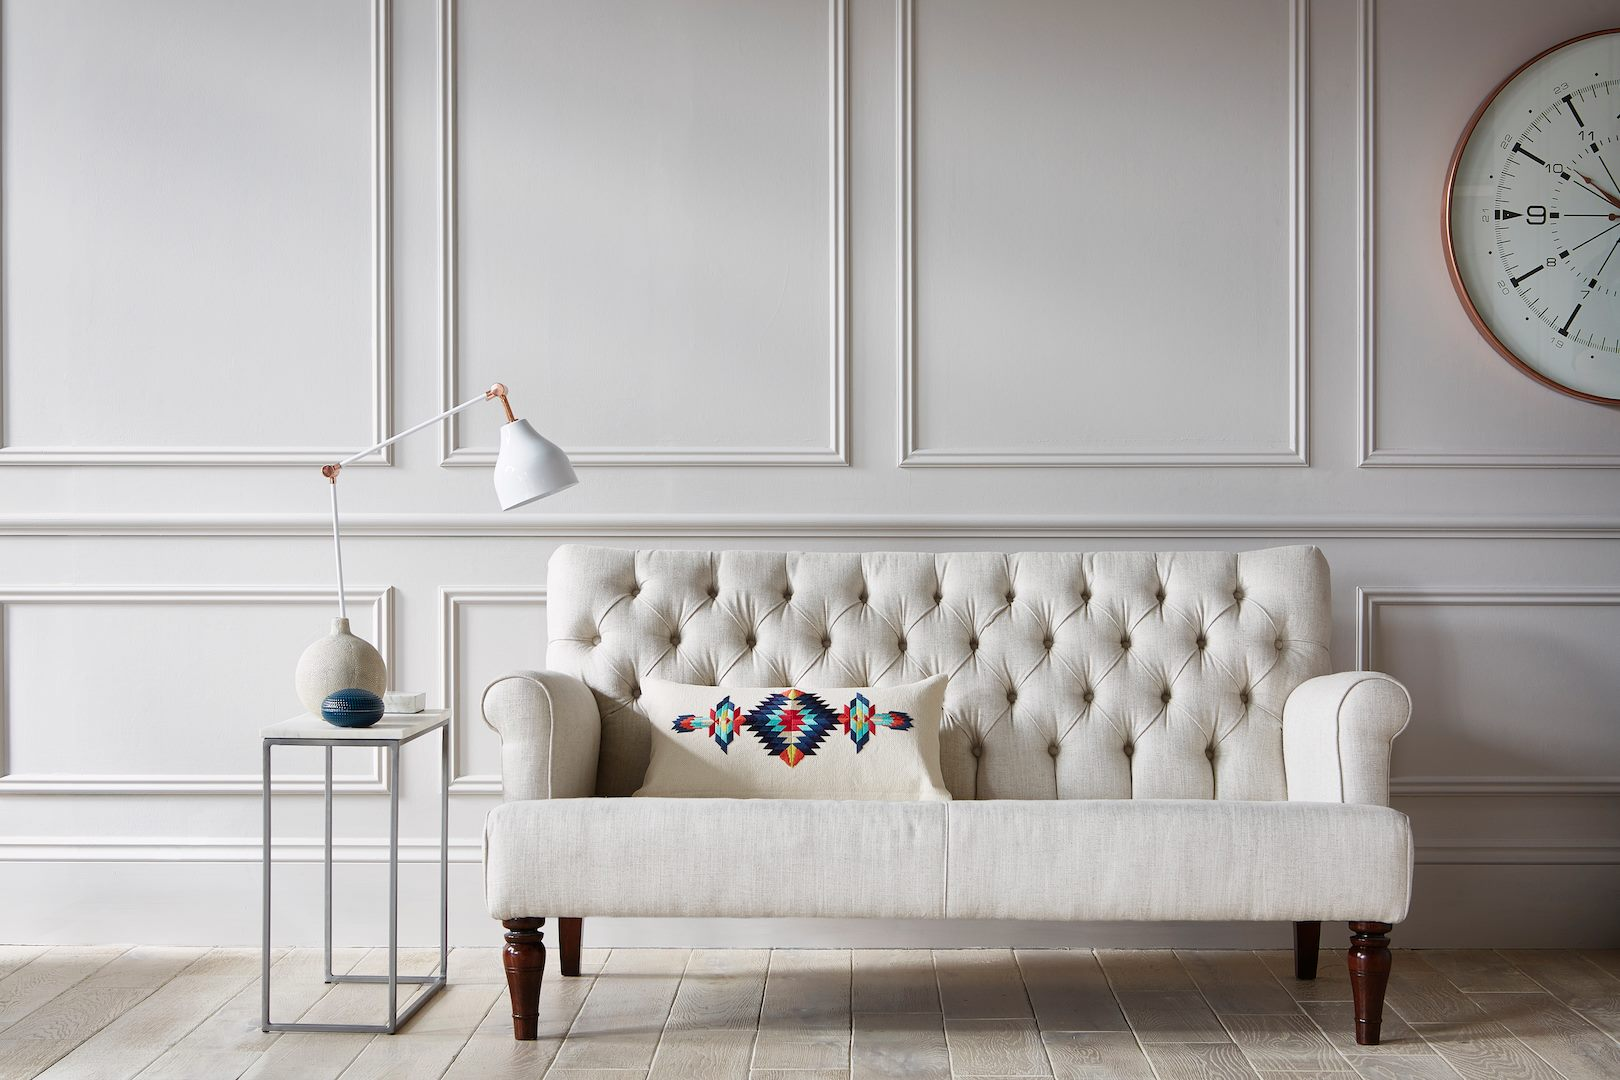 darlings of chelsea - The quality of fine British craftsmanship - with the added bonus of faster delivery times and your own account manager to take you from purchase through styling your dream house.